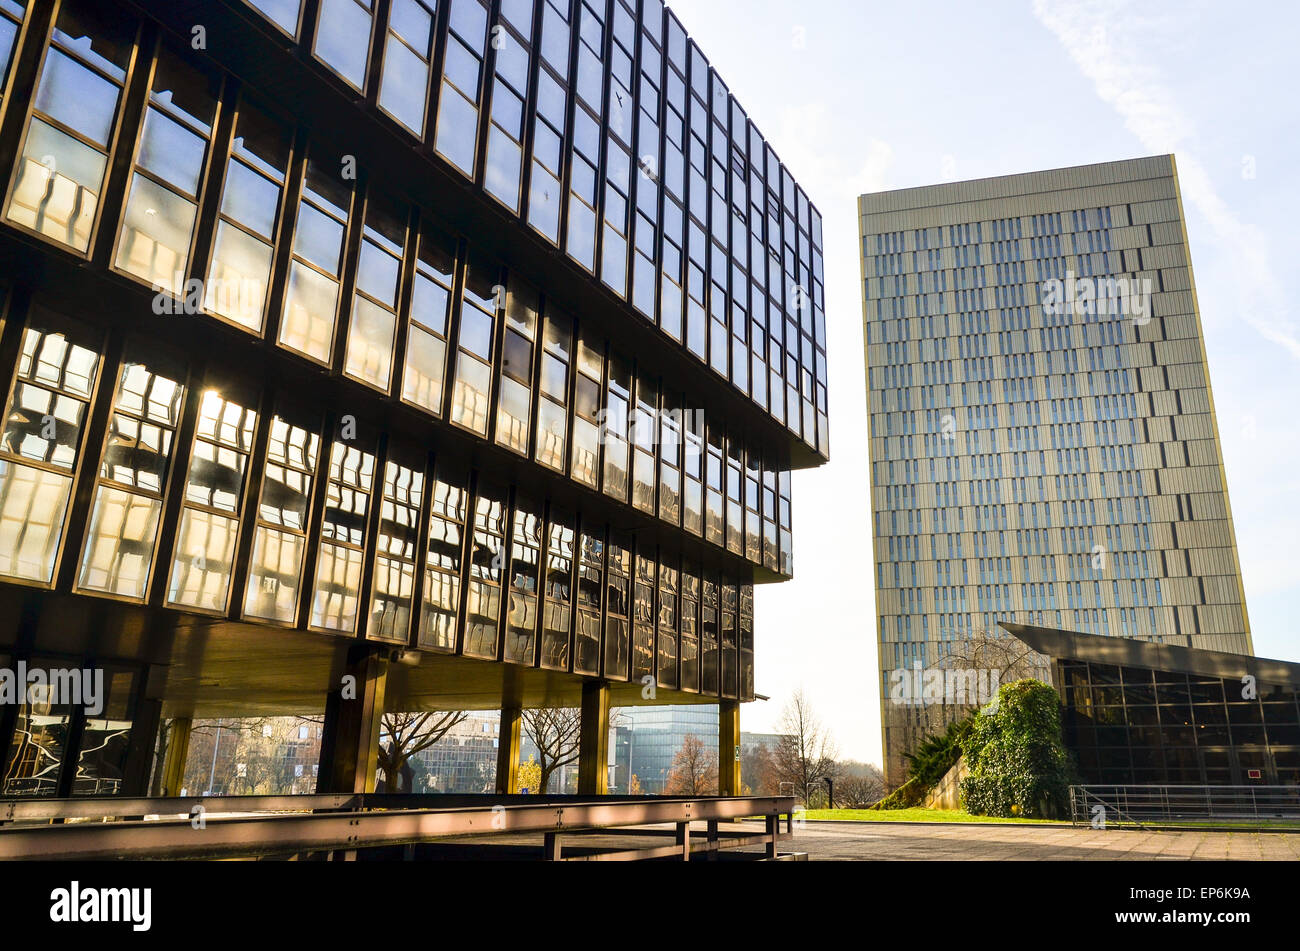 Morning light shining over the European Court of Justice and European Commission in Kirchberg, Luxembourg - Stock Image